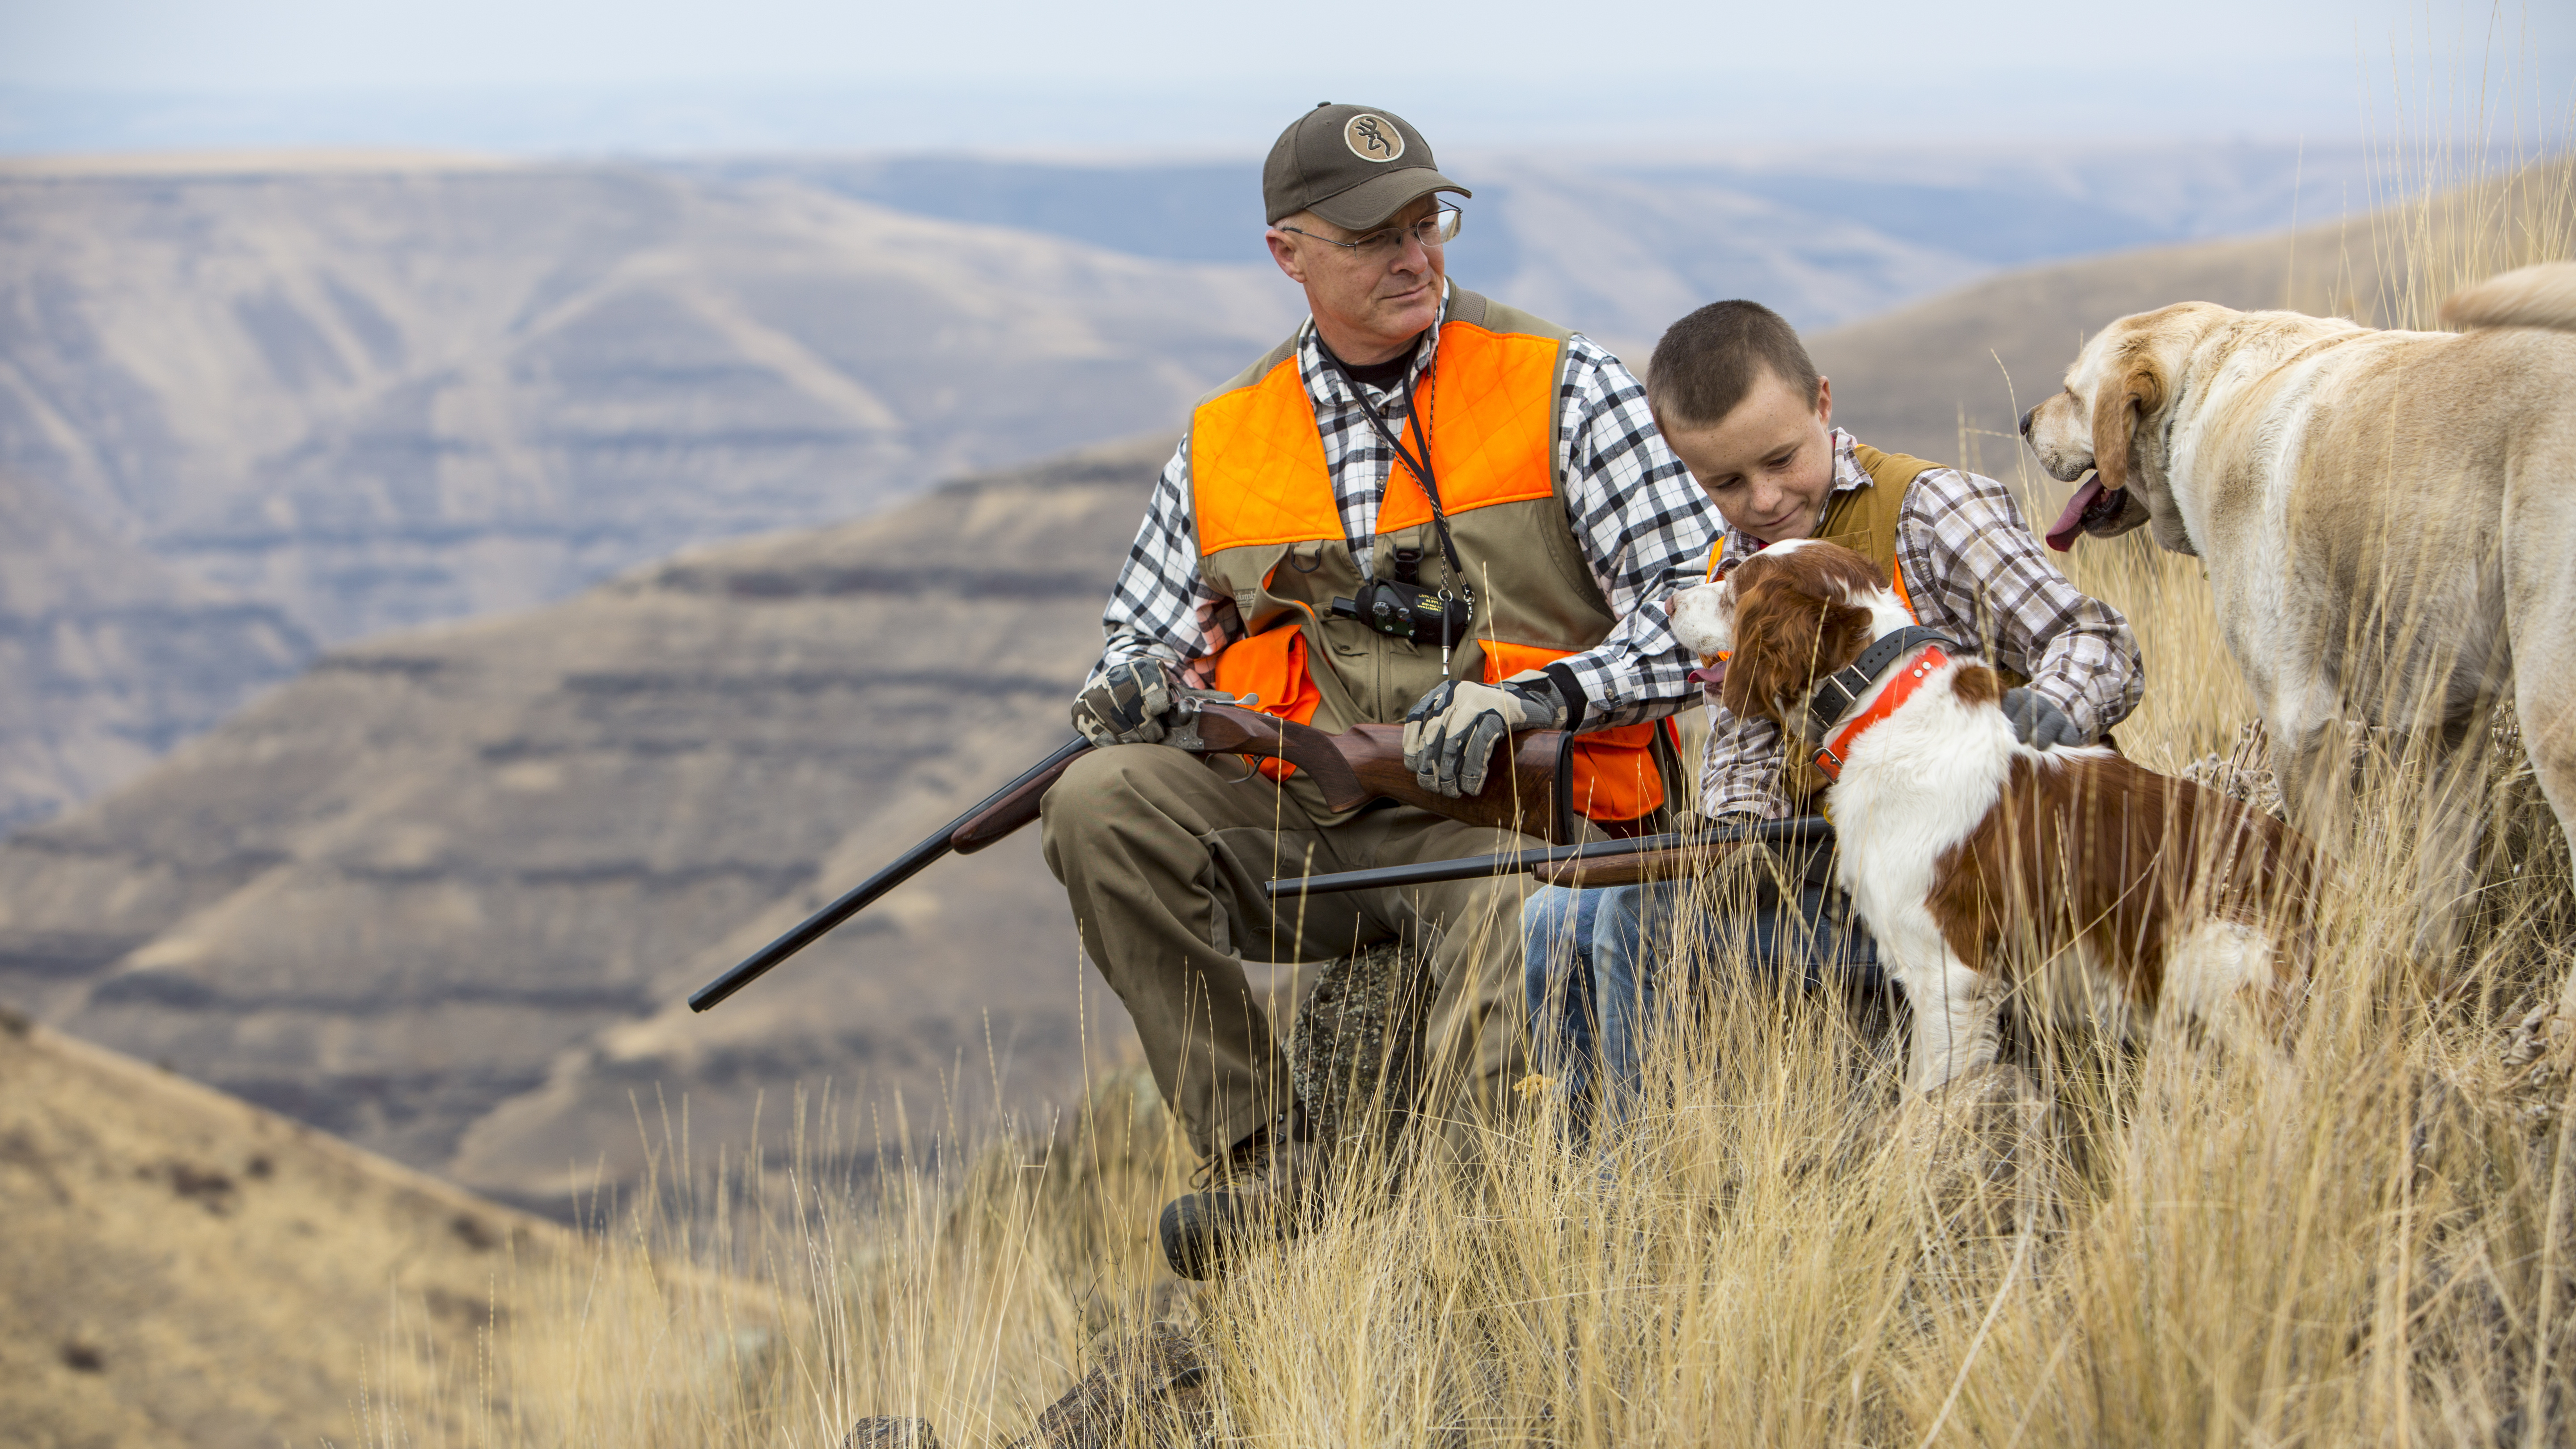 medium shot of a man and boy with their dogs dressed in hunter orange taking a break from hunting October 2015